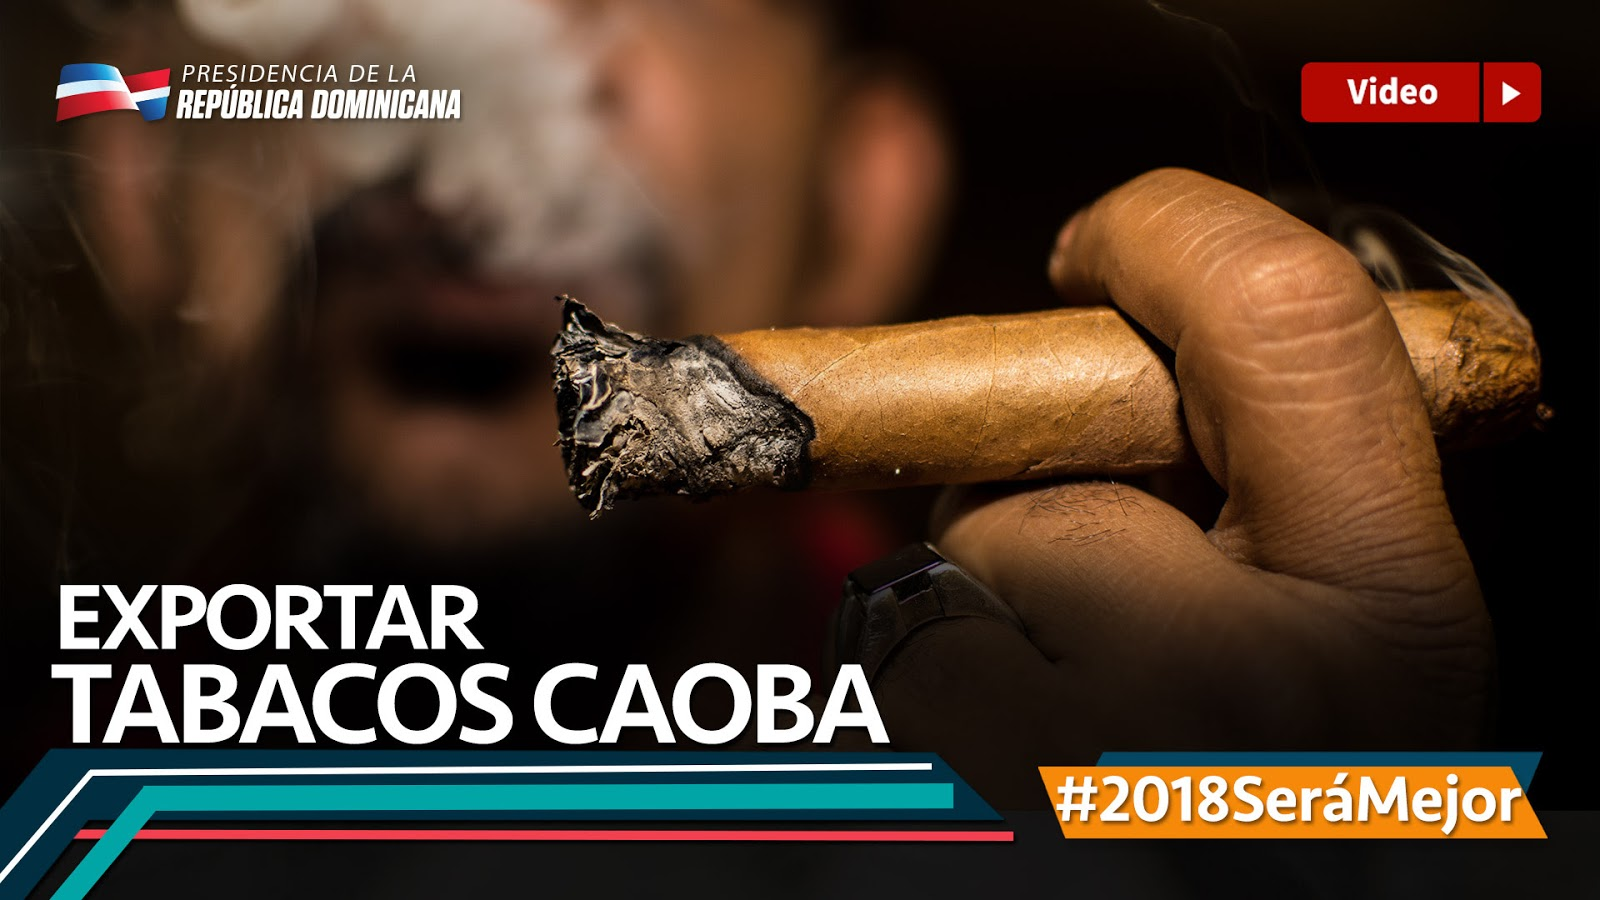 VIDEO: Tabacalera Caoba